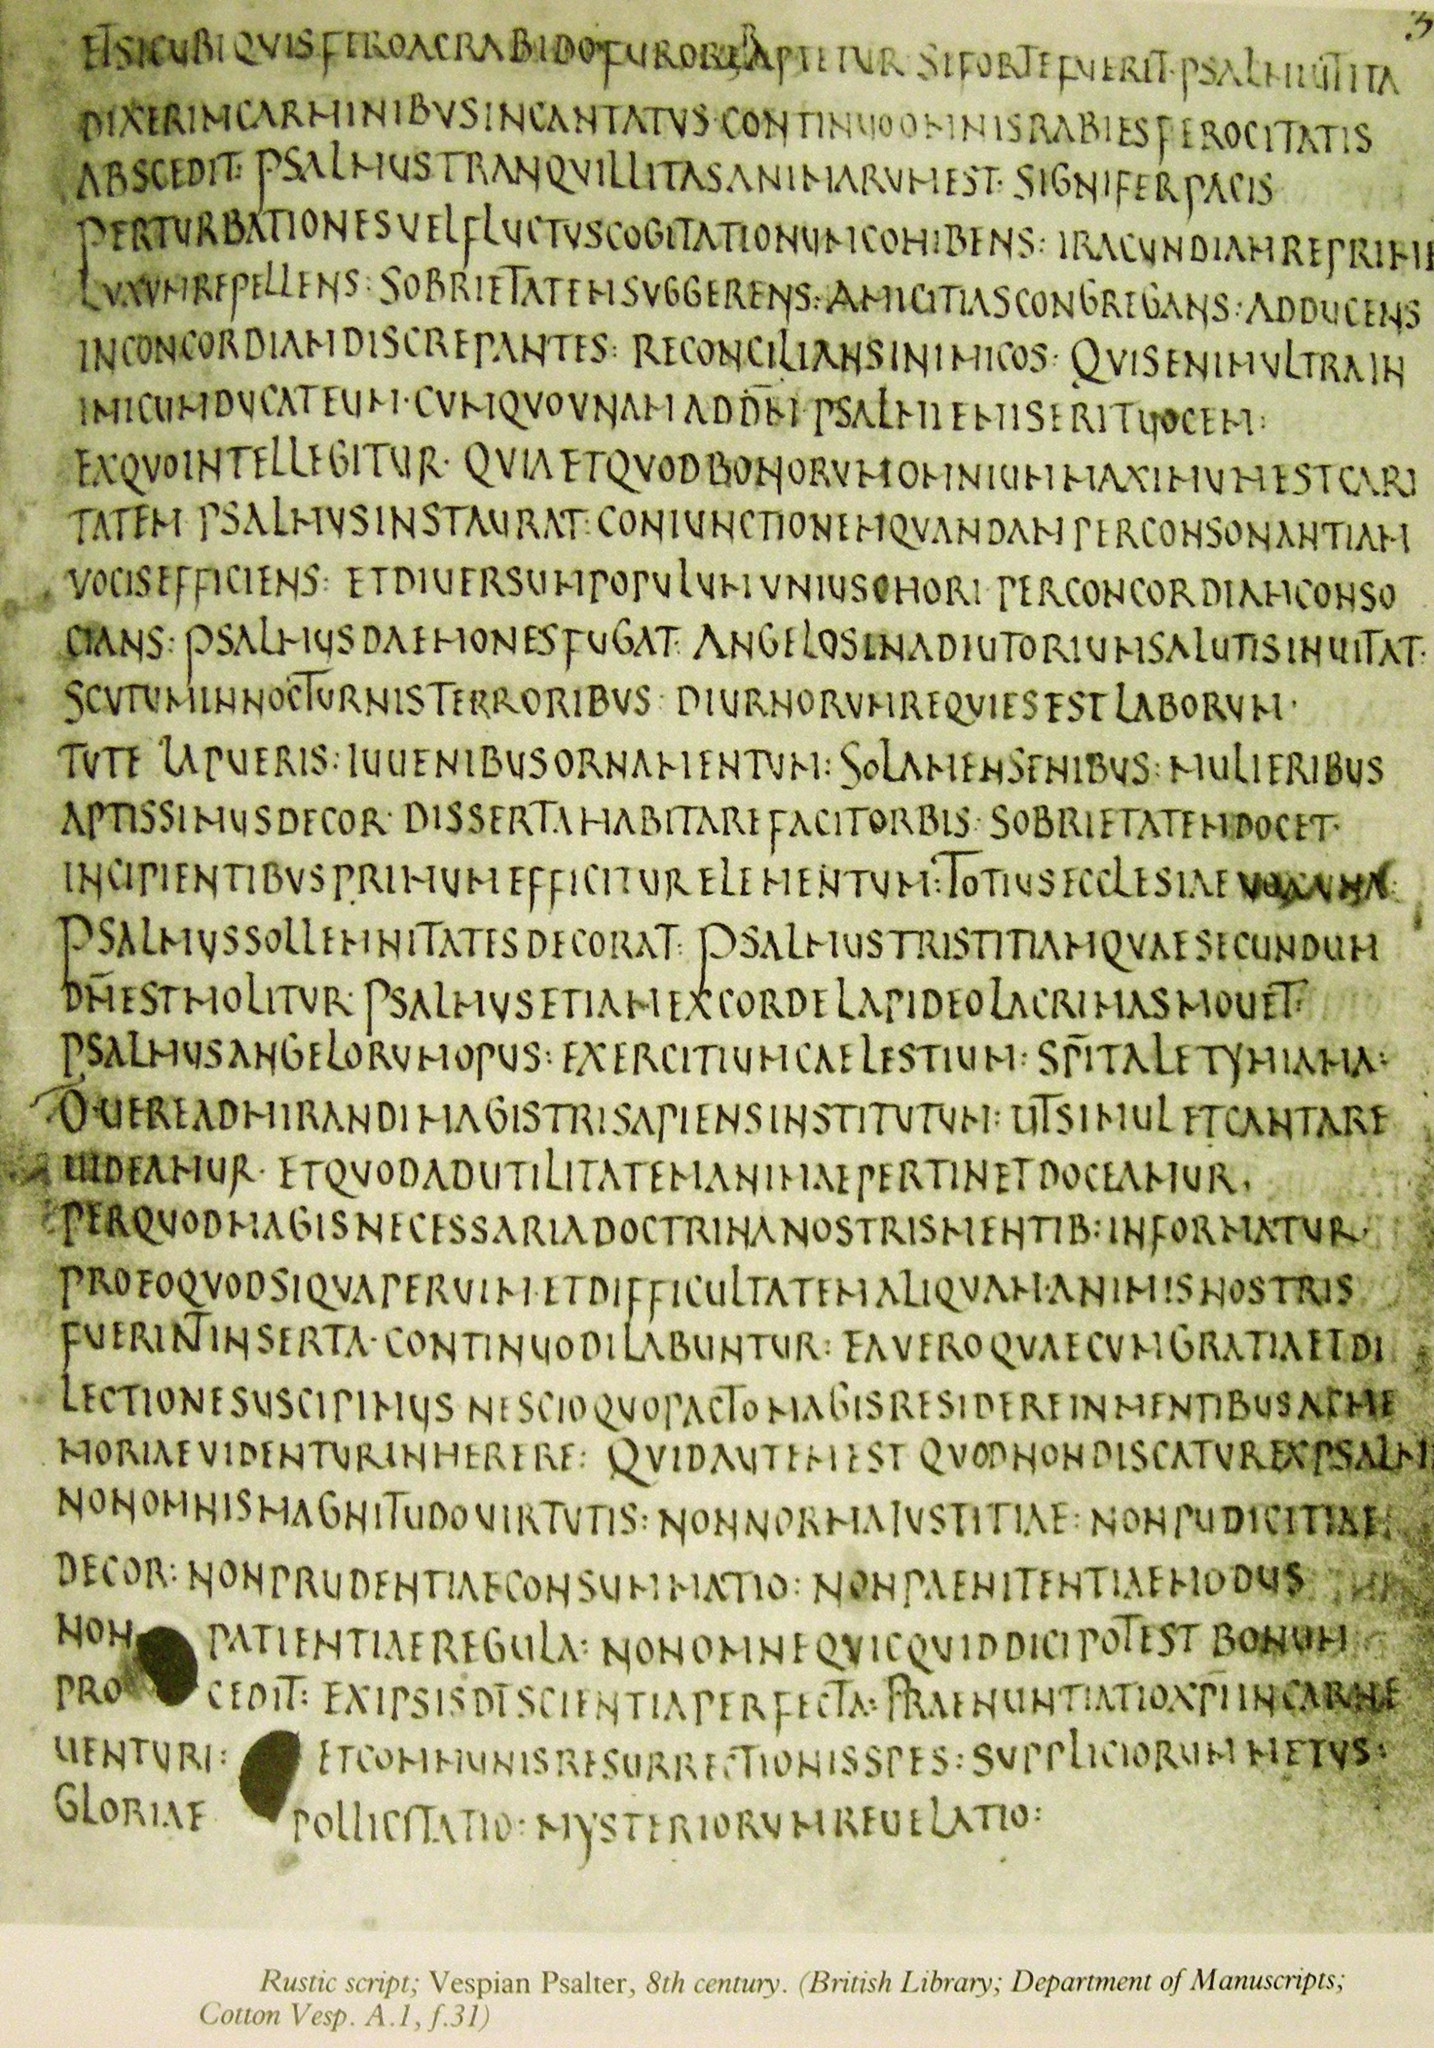 Manuscrit en écriture Rustica - British Library